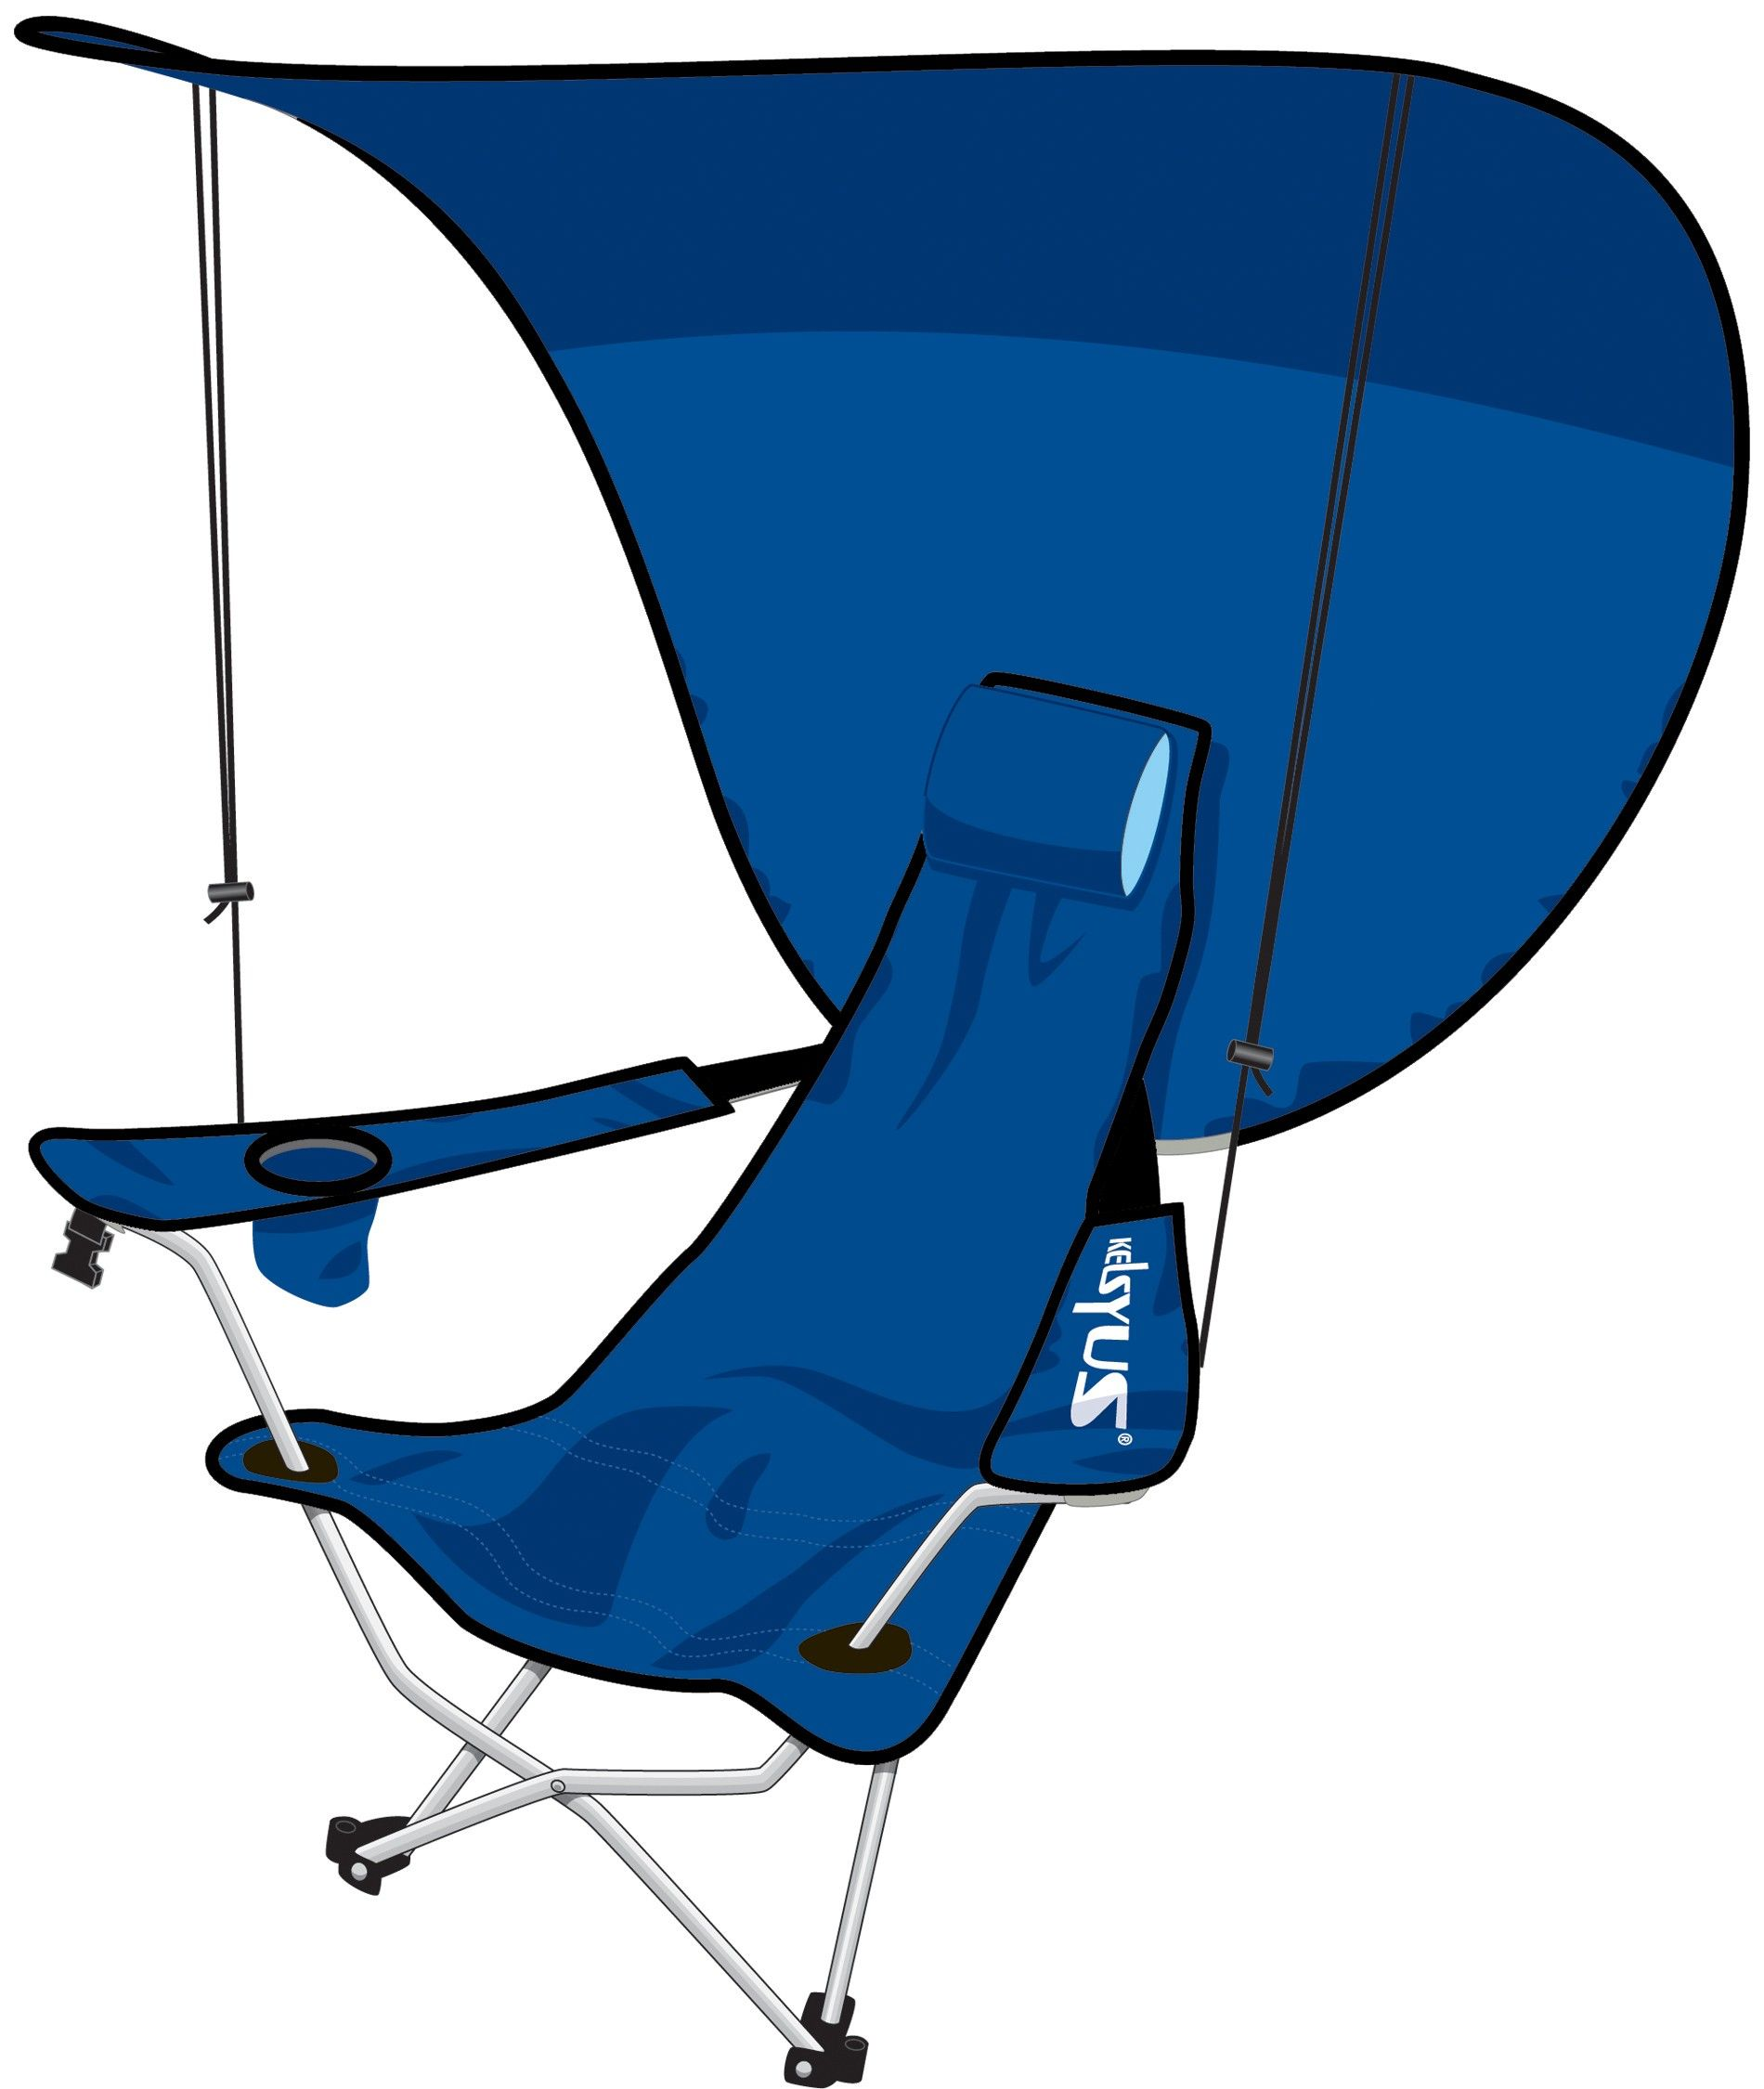 Our Popular Portable Folding Chair Now With A Uv Canopy